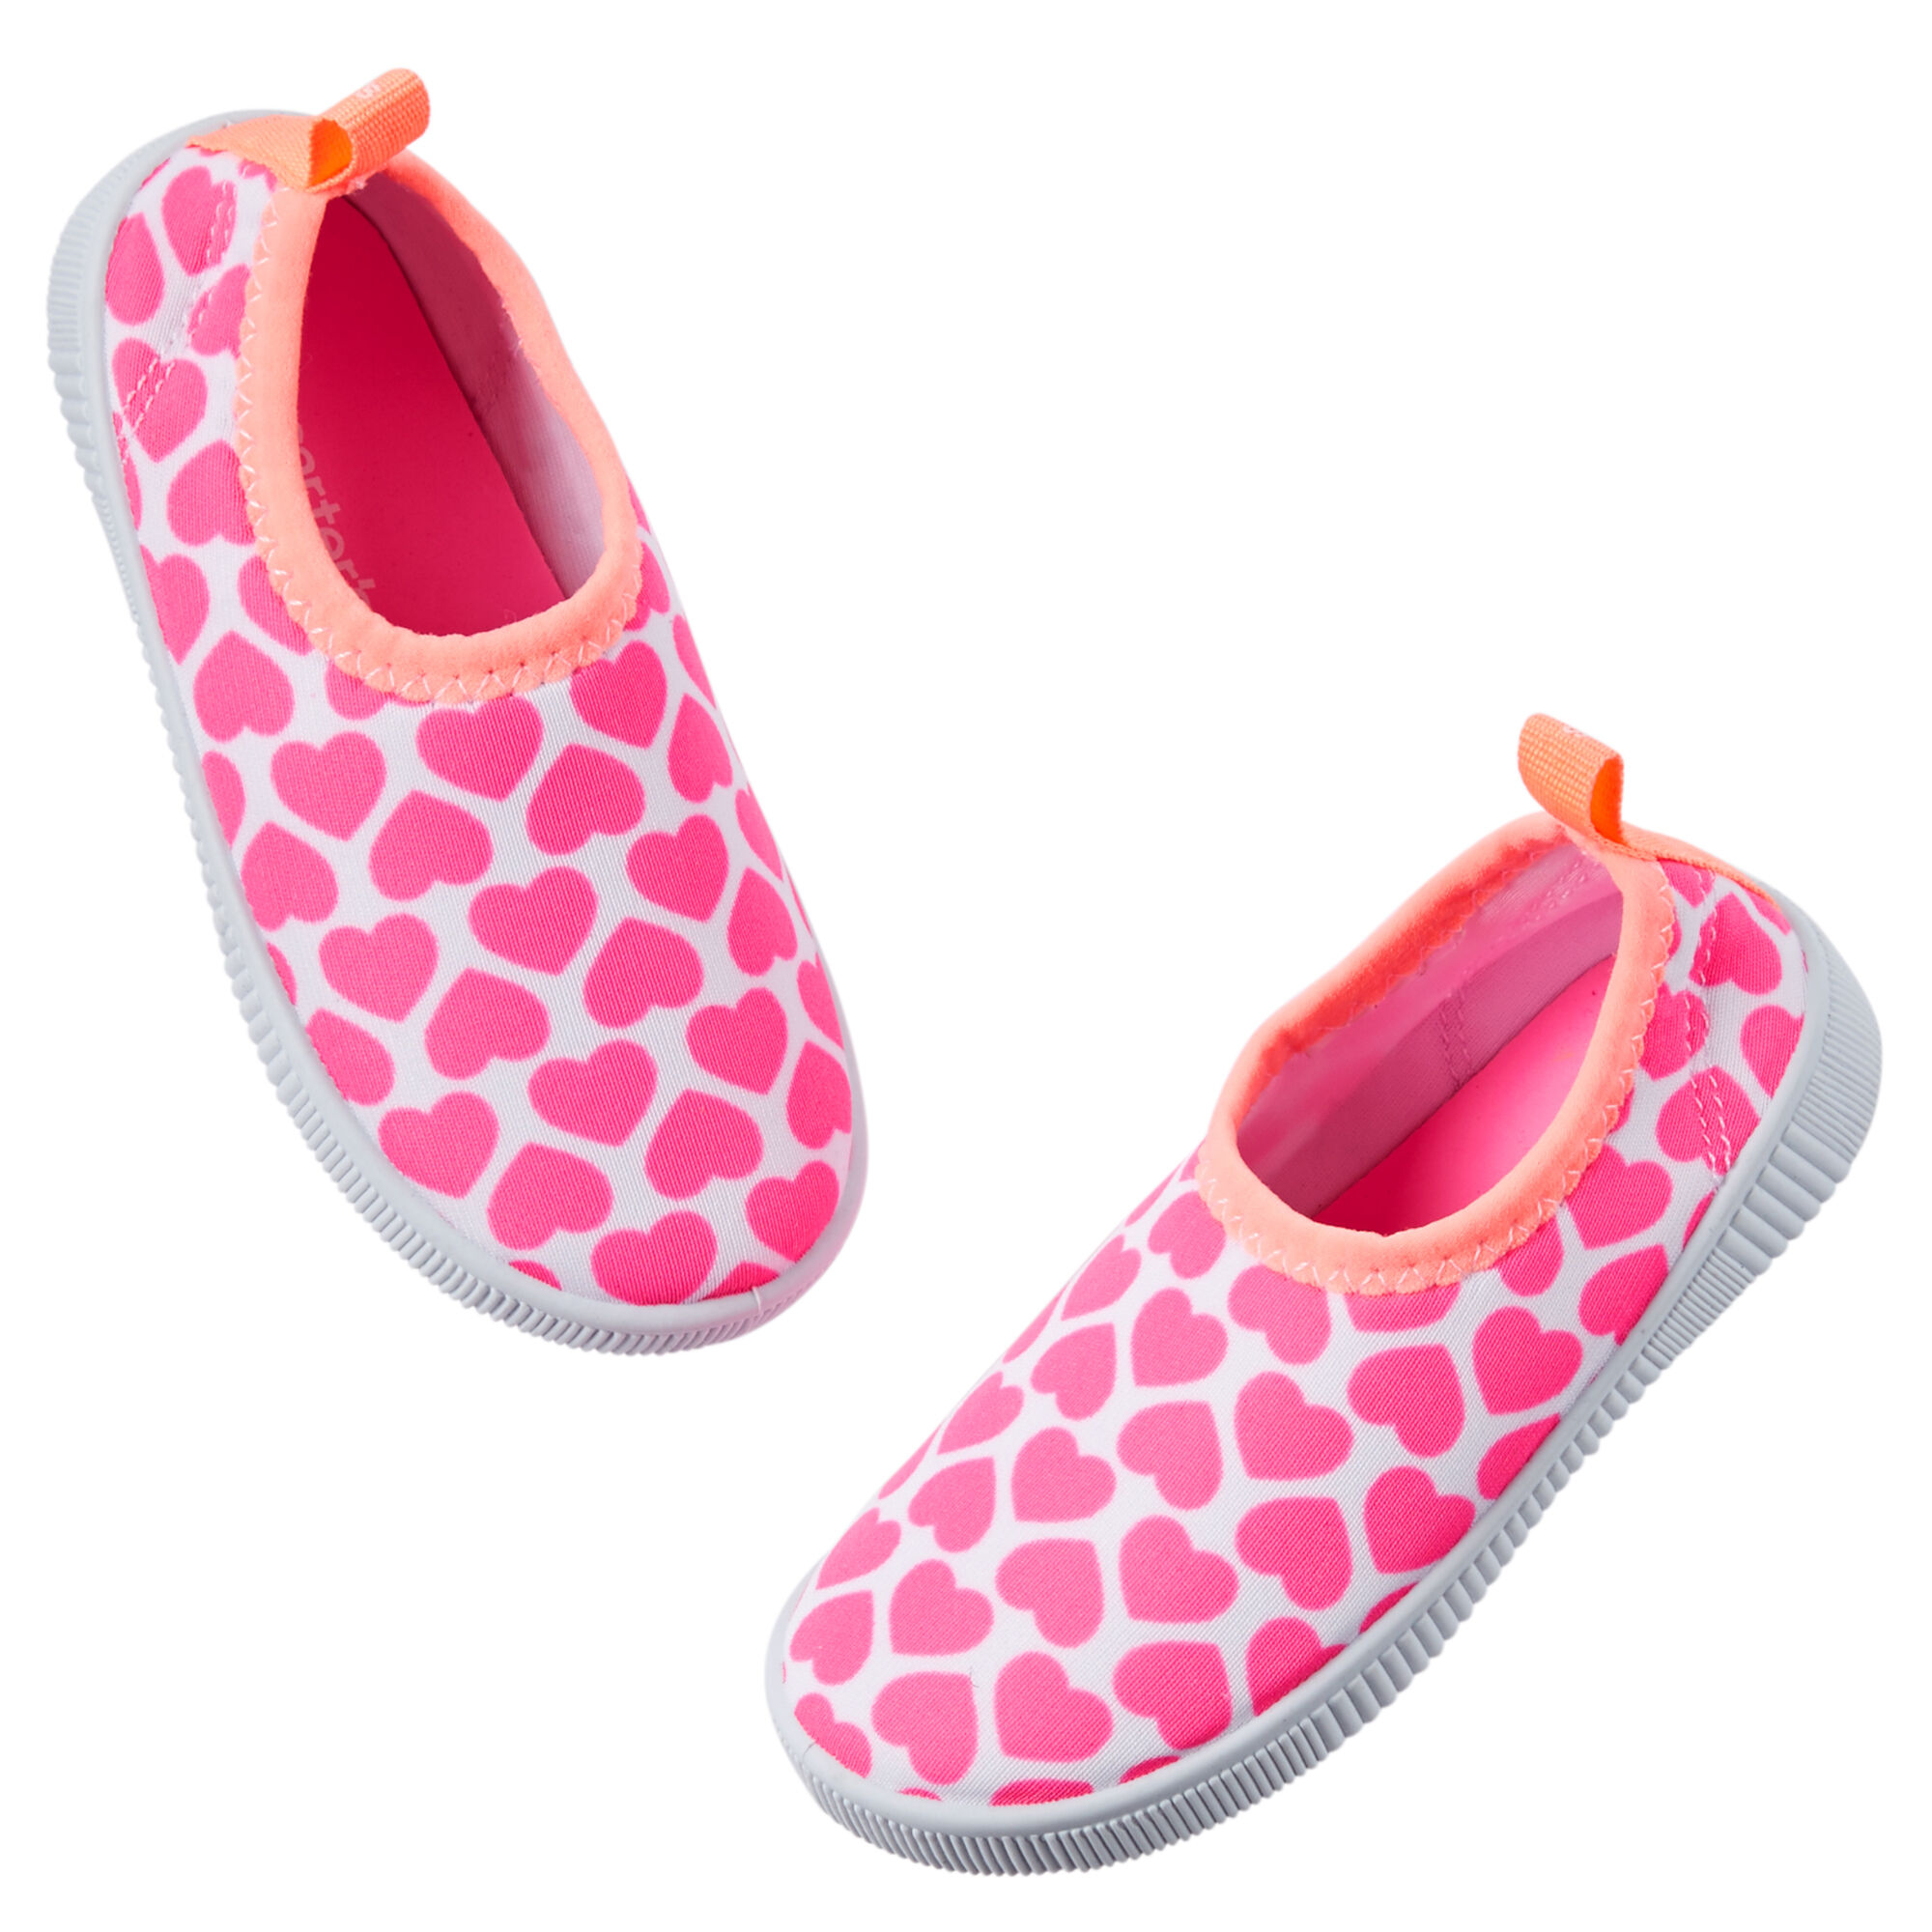 Baby Girl Water Shoes Newest and Cutest Baby Clothing Collection